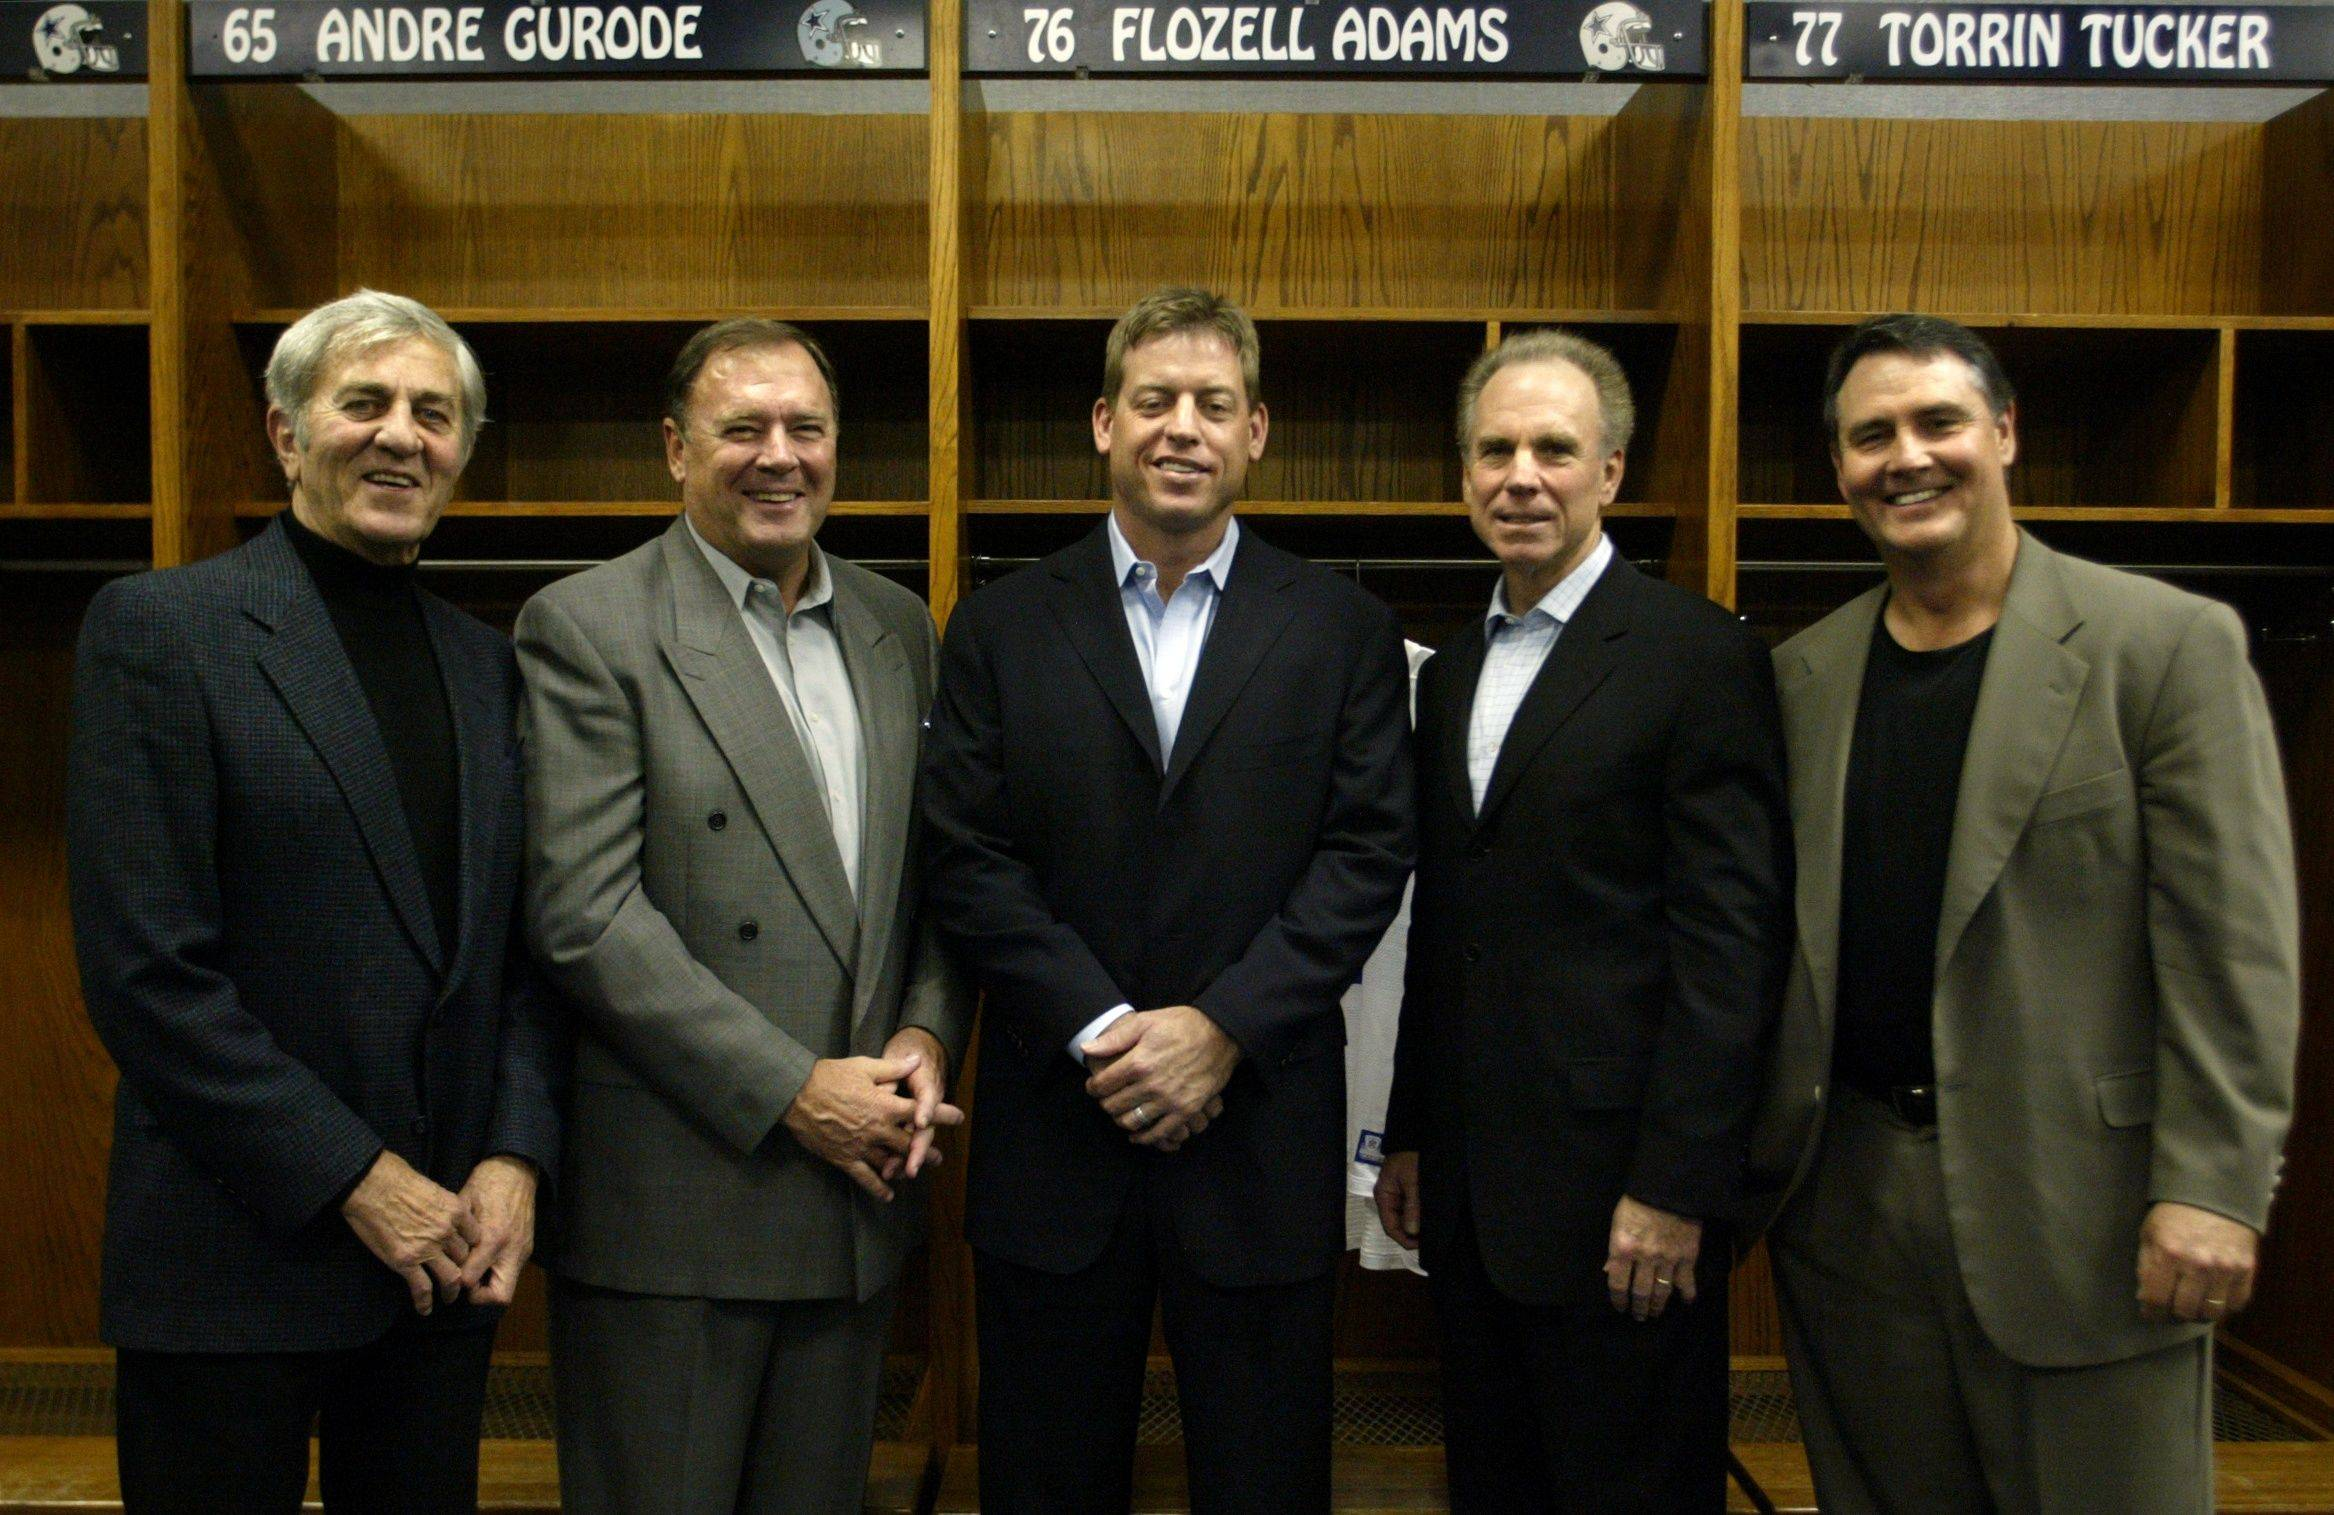 This Nov. 3, 2003, photo shows former Dallas Cowboys quarterbacks, from left; Don Meredith, Craig Morton, Troy Aikman, Roger Staubach, and Danny White, at Texas Stadium in Irving, Texas.